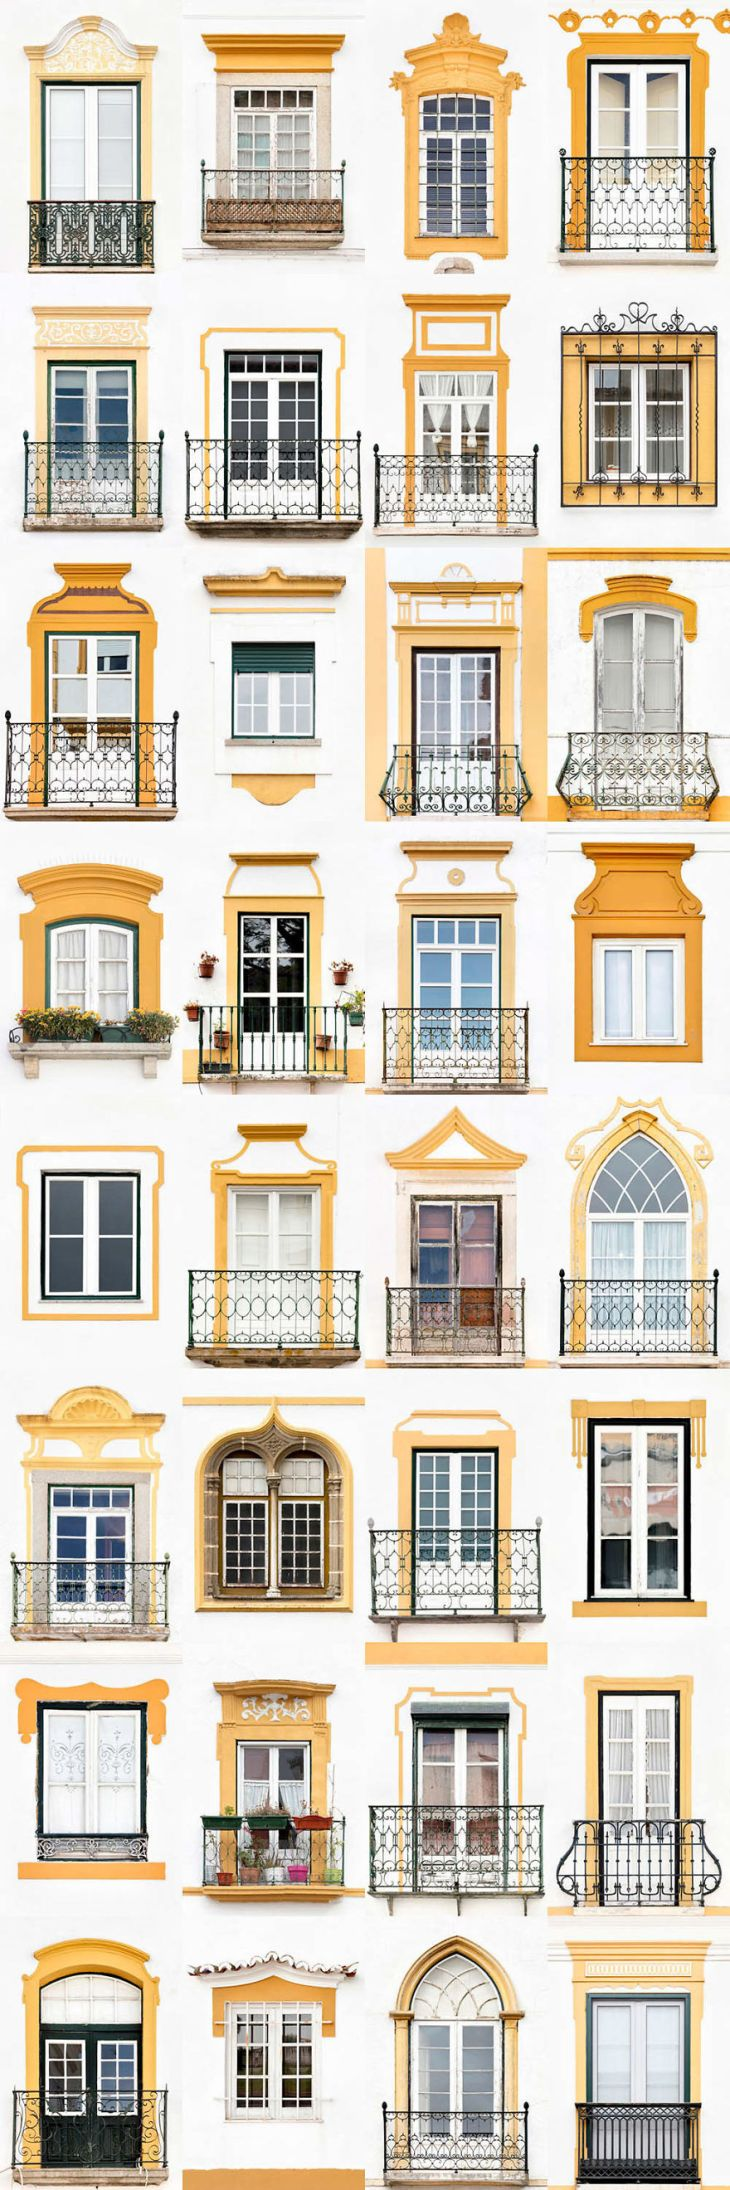 I-traveled-all-over-portugal-to-photograph-windows-more-than-3200-59edaf3ae558b__880